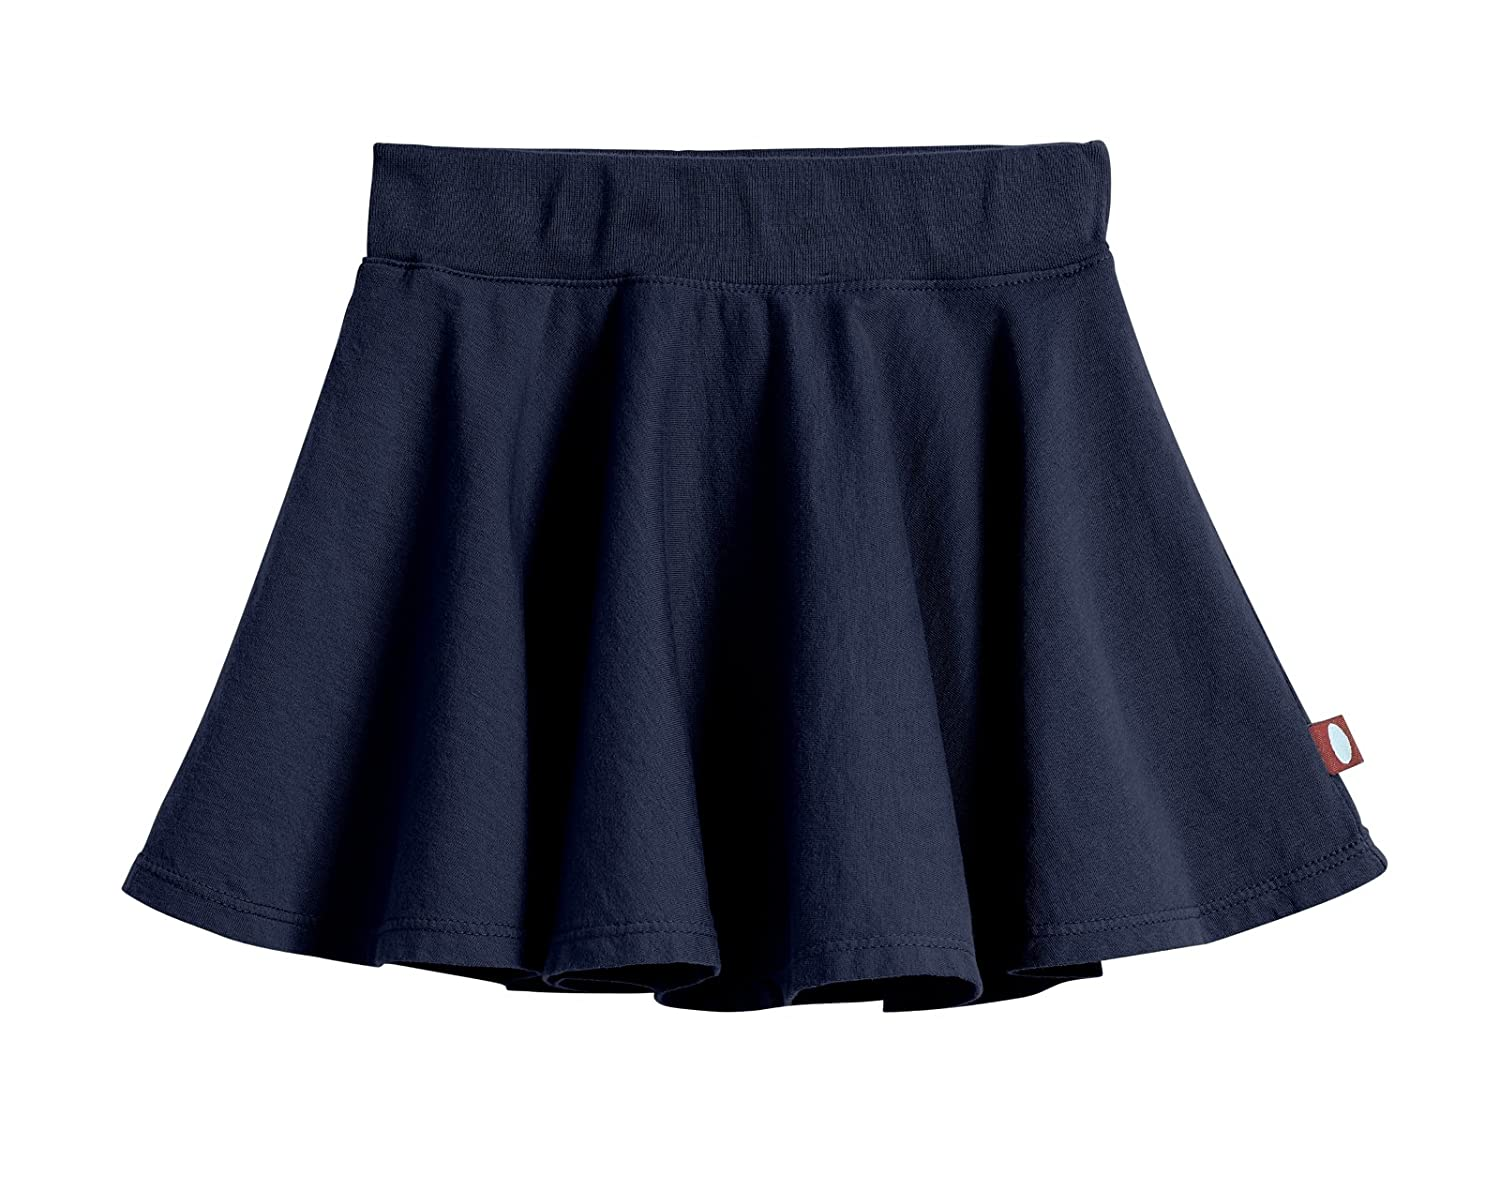 100% True Toddler Girl Circle Fine Thin Knit Skirt Size 3t Navy Blue Girls' Clothing (newborn-5t) Skirts